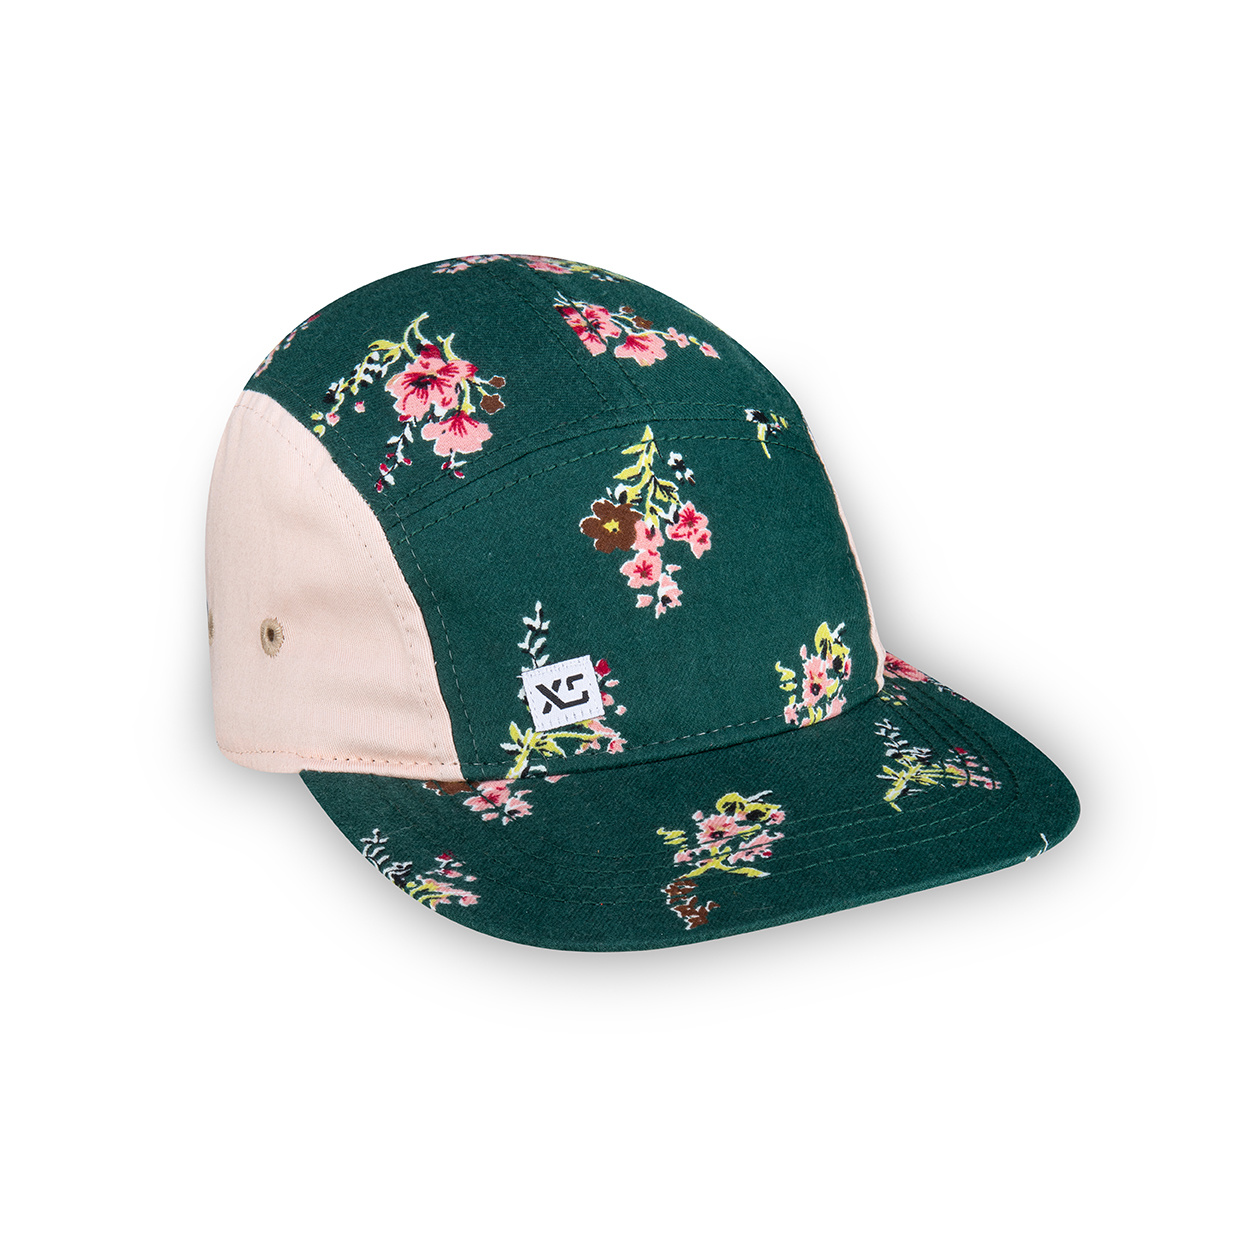 XS Unified XS Unified Kid's 5 Panel Hat Green Floral